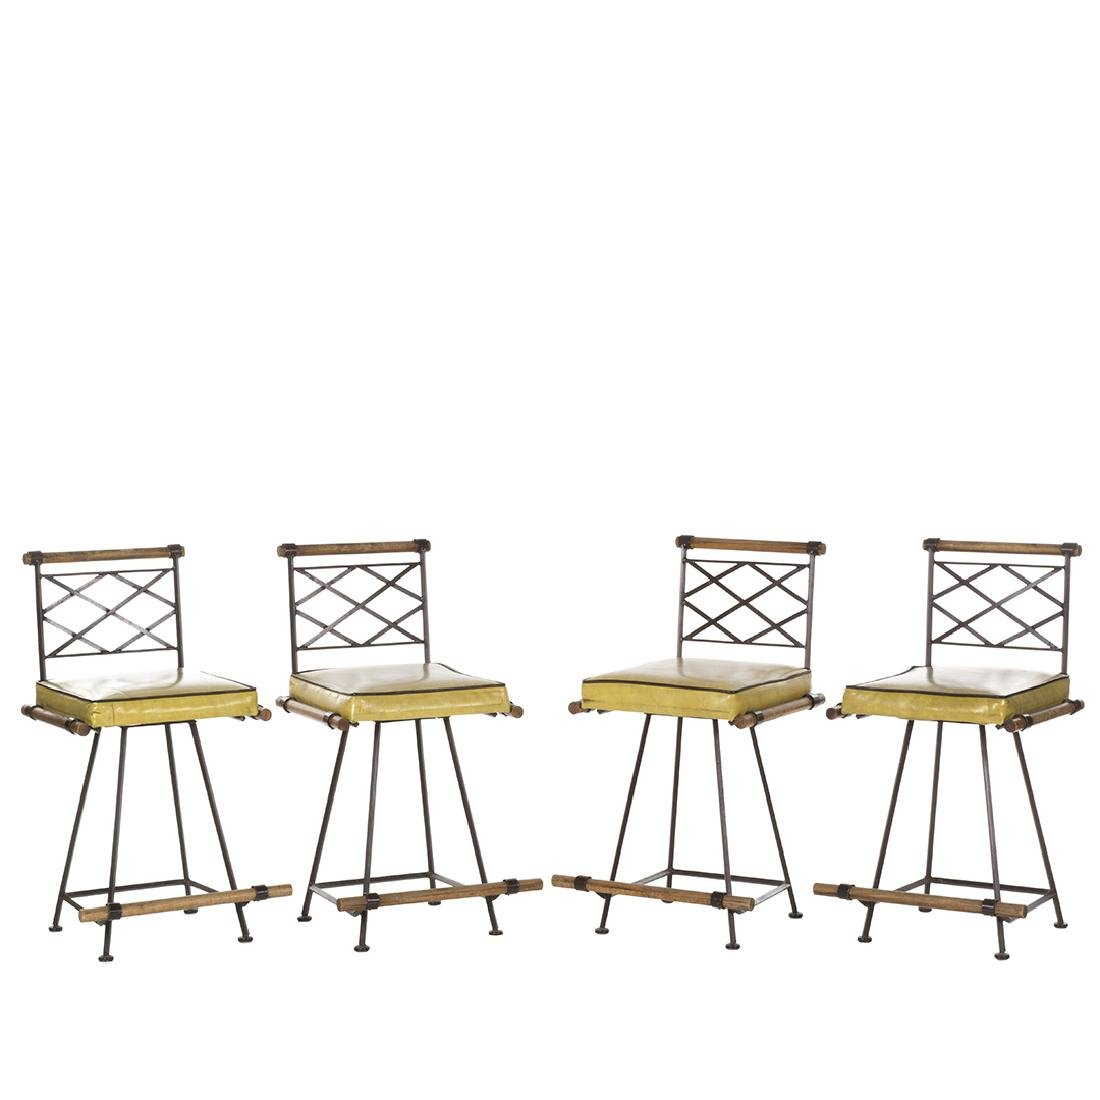 Cleo Baldon Style or Iron and Oak Barstools (4)